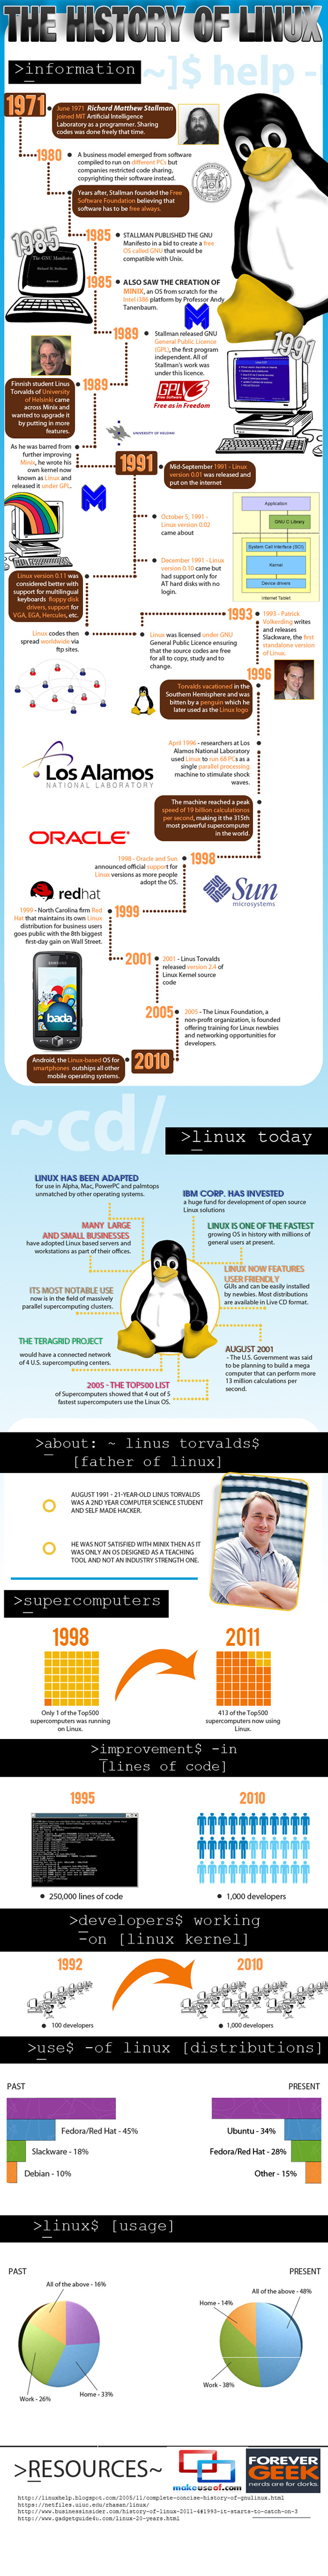 the history of linux MakeUseOf